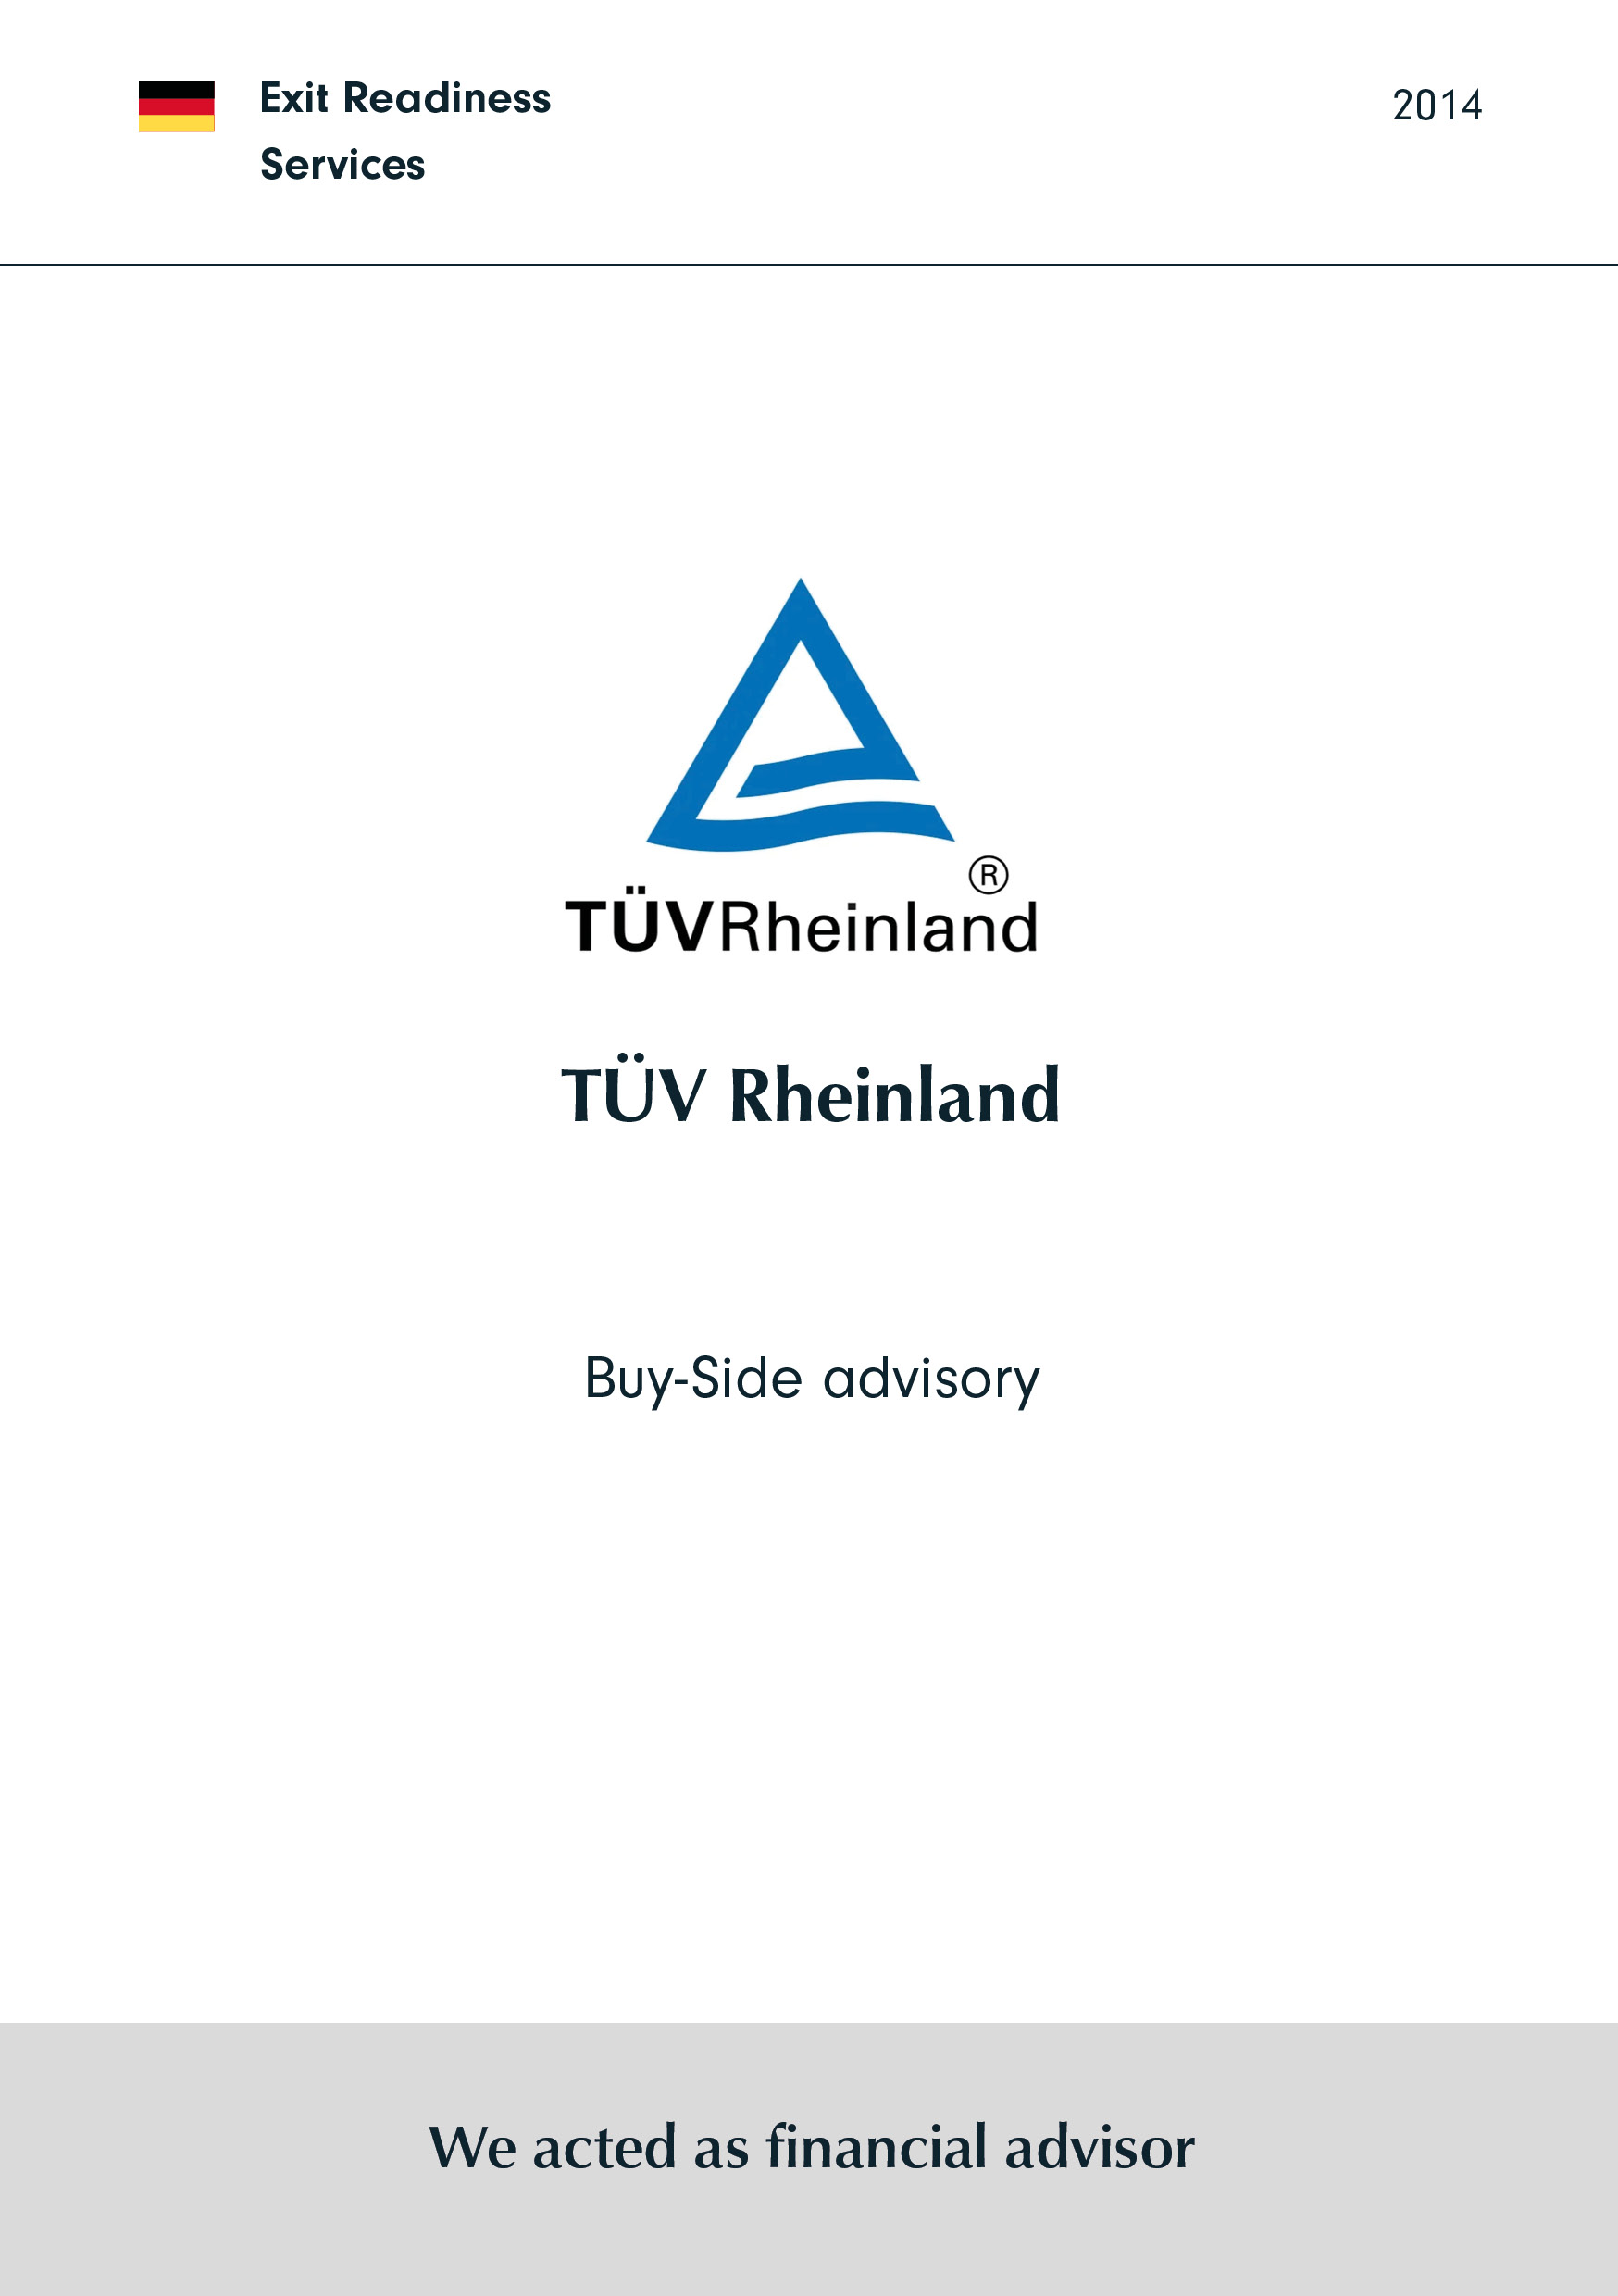 TÜV Nordrhein | Buy-Side advisory